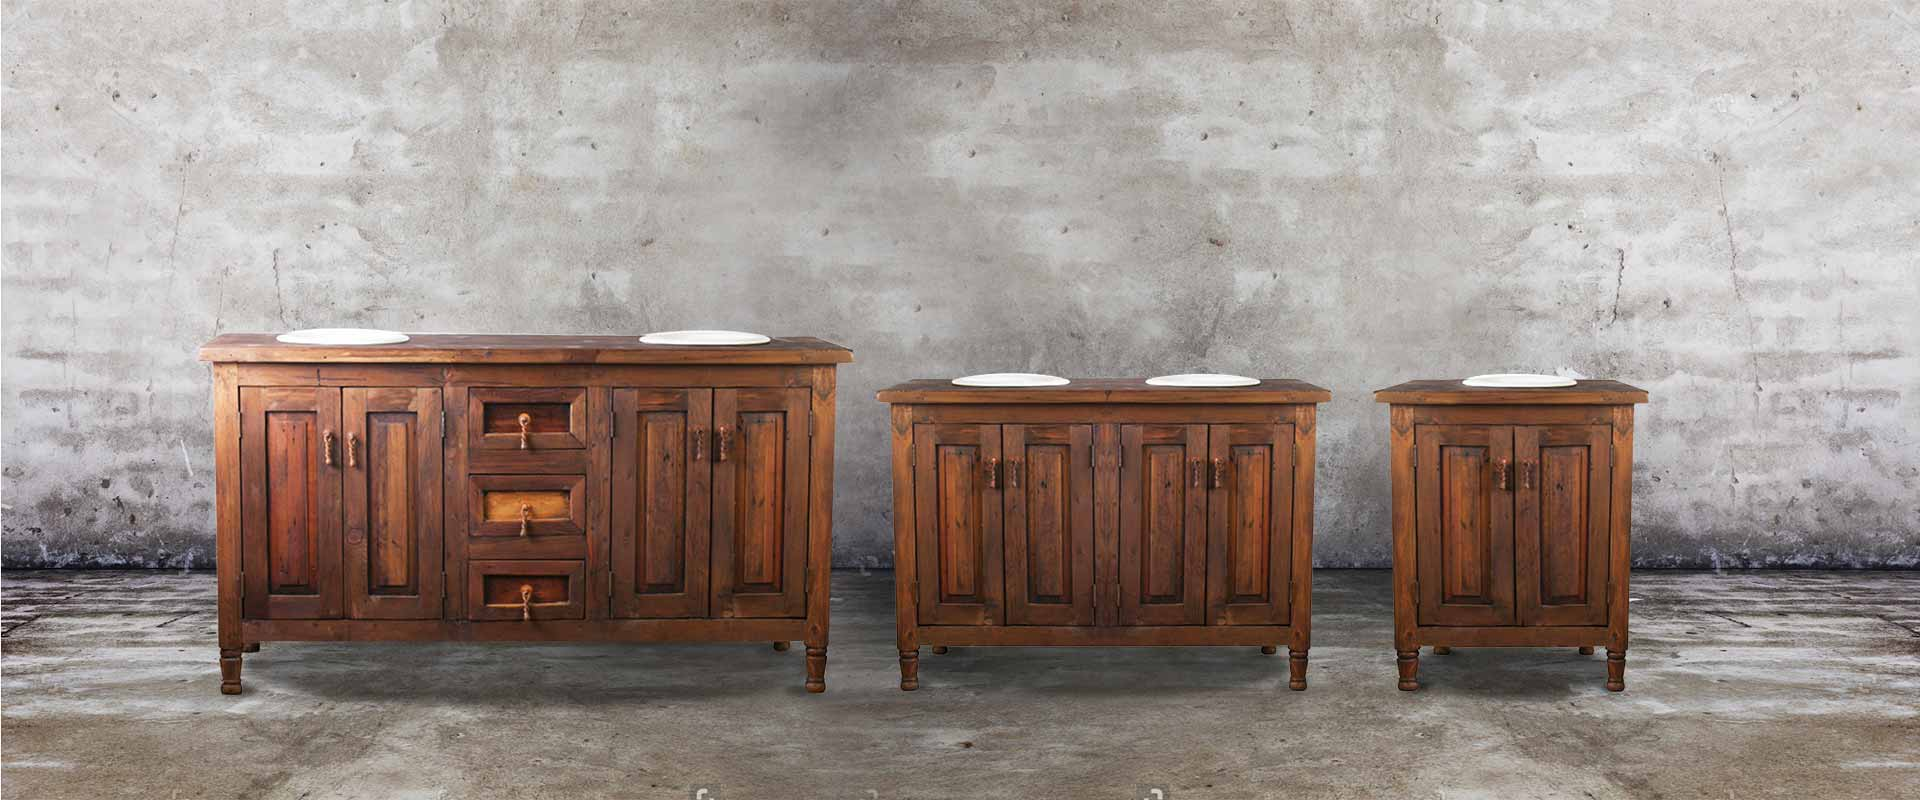 Southwest bathroom vanities - Create Any Size You Want